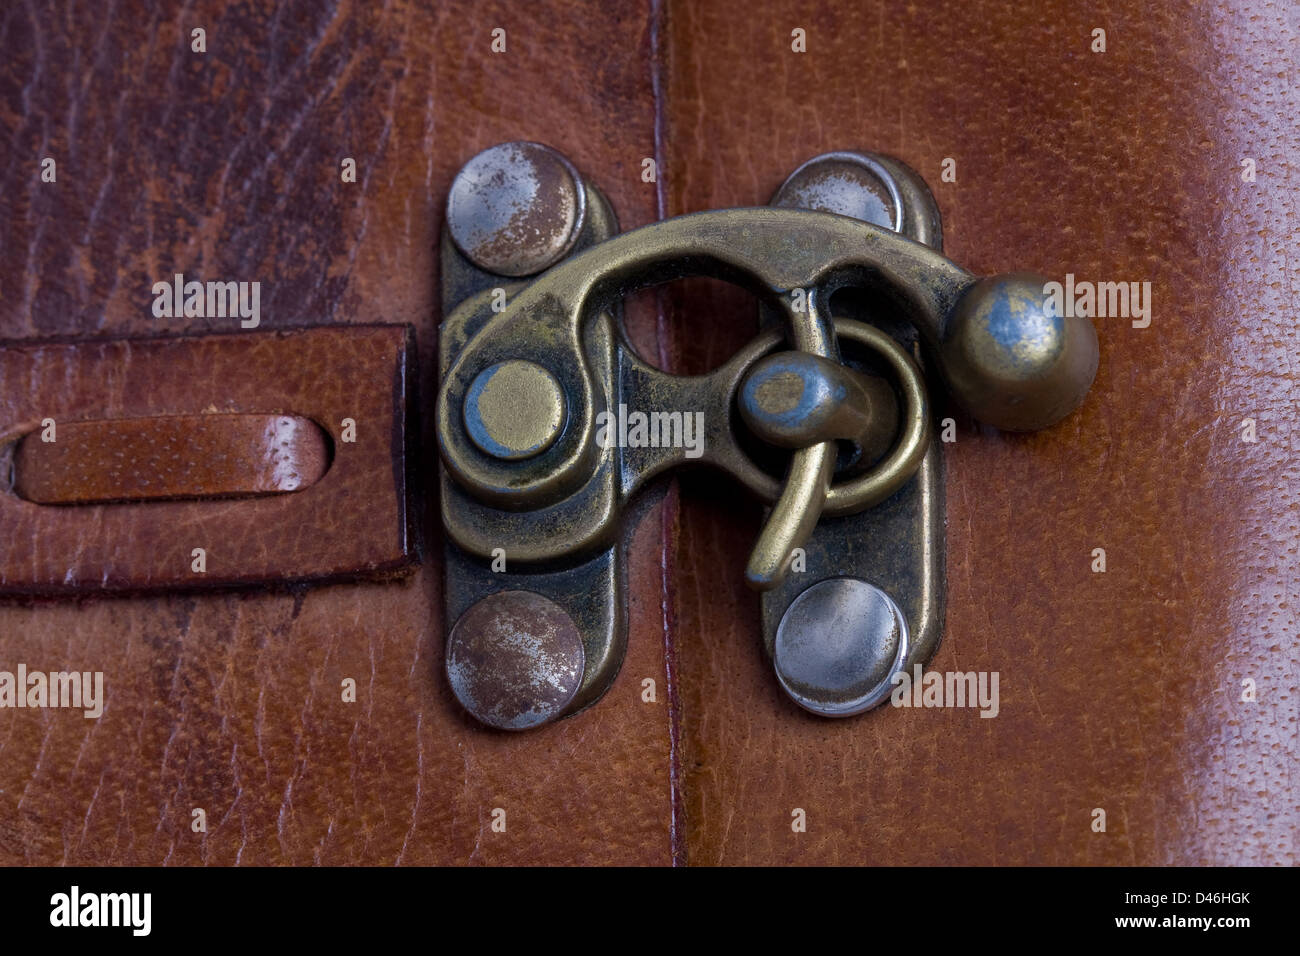 Closeup of vintage lock of an old leather man's bag - Stock Image